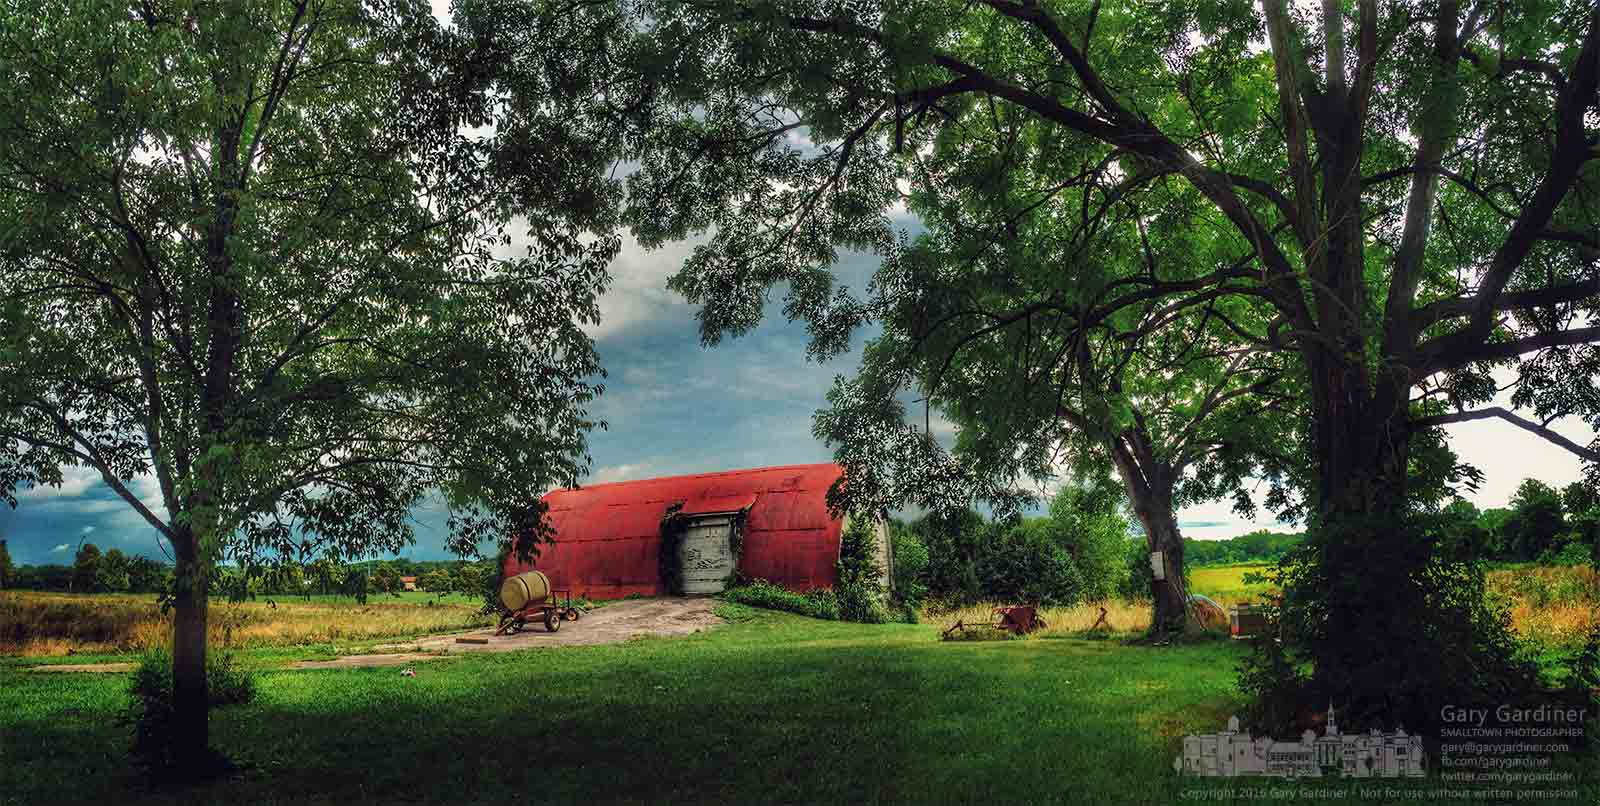 The Braun Farm barn and grounds are rich in color after rains on a Monday. My Final Photo for August. 15, 2016.